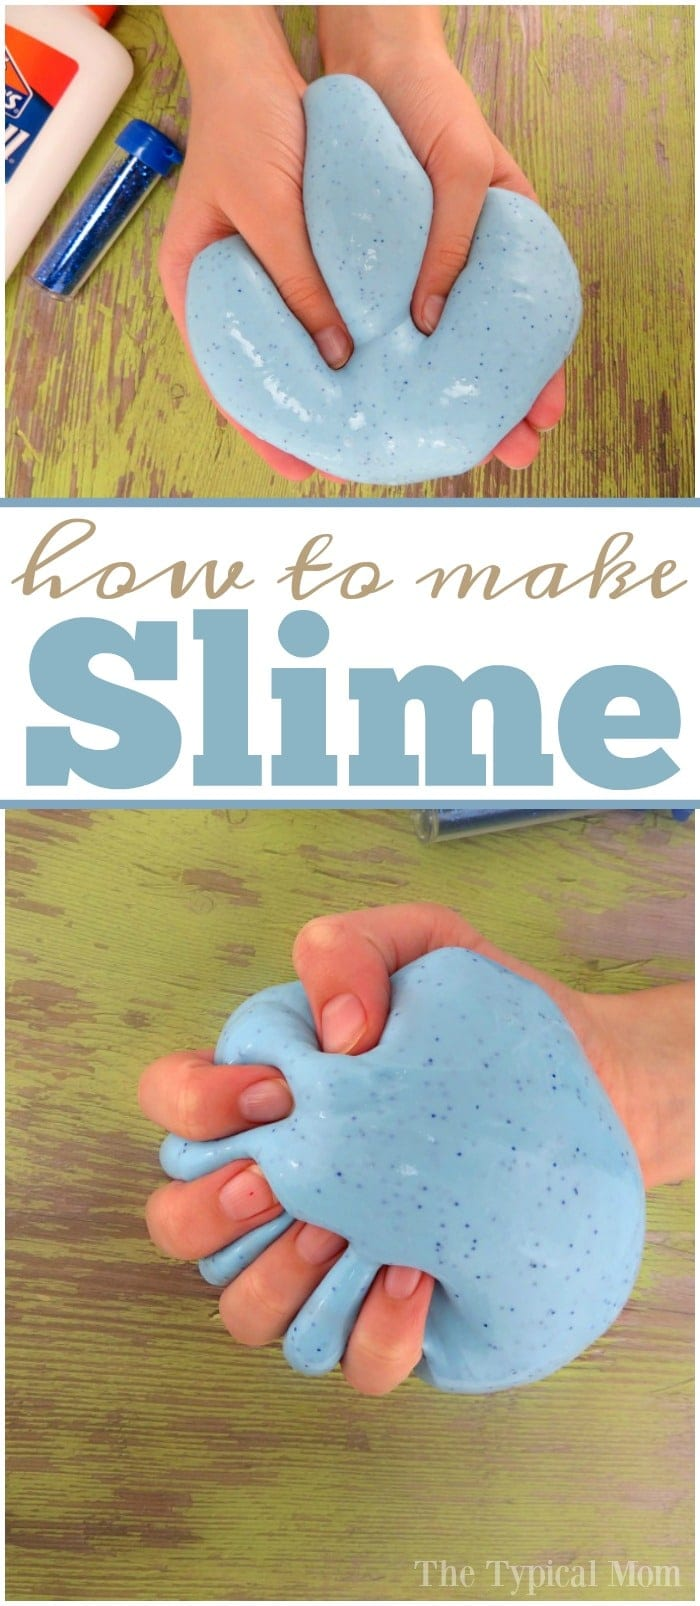 This is how to make slime with glue and a little glitter inside too! Easy recipe using just a few ingredients, and you can make it any color you like. The best way to make slime that is very pliable and the base to most  other goo recipes too. Huge list full of other slime recipes attached here too! #easy #slime #recipe #glue #basic #best #glue